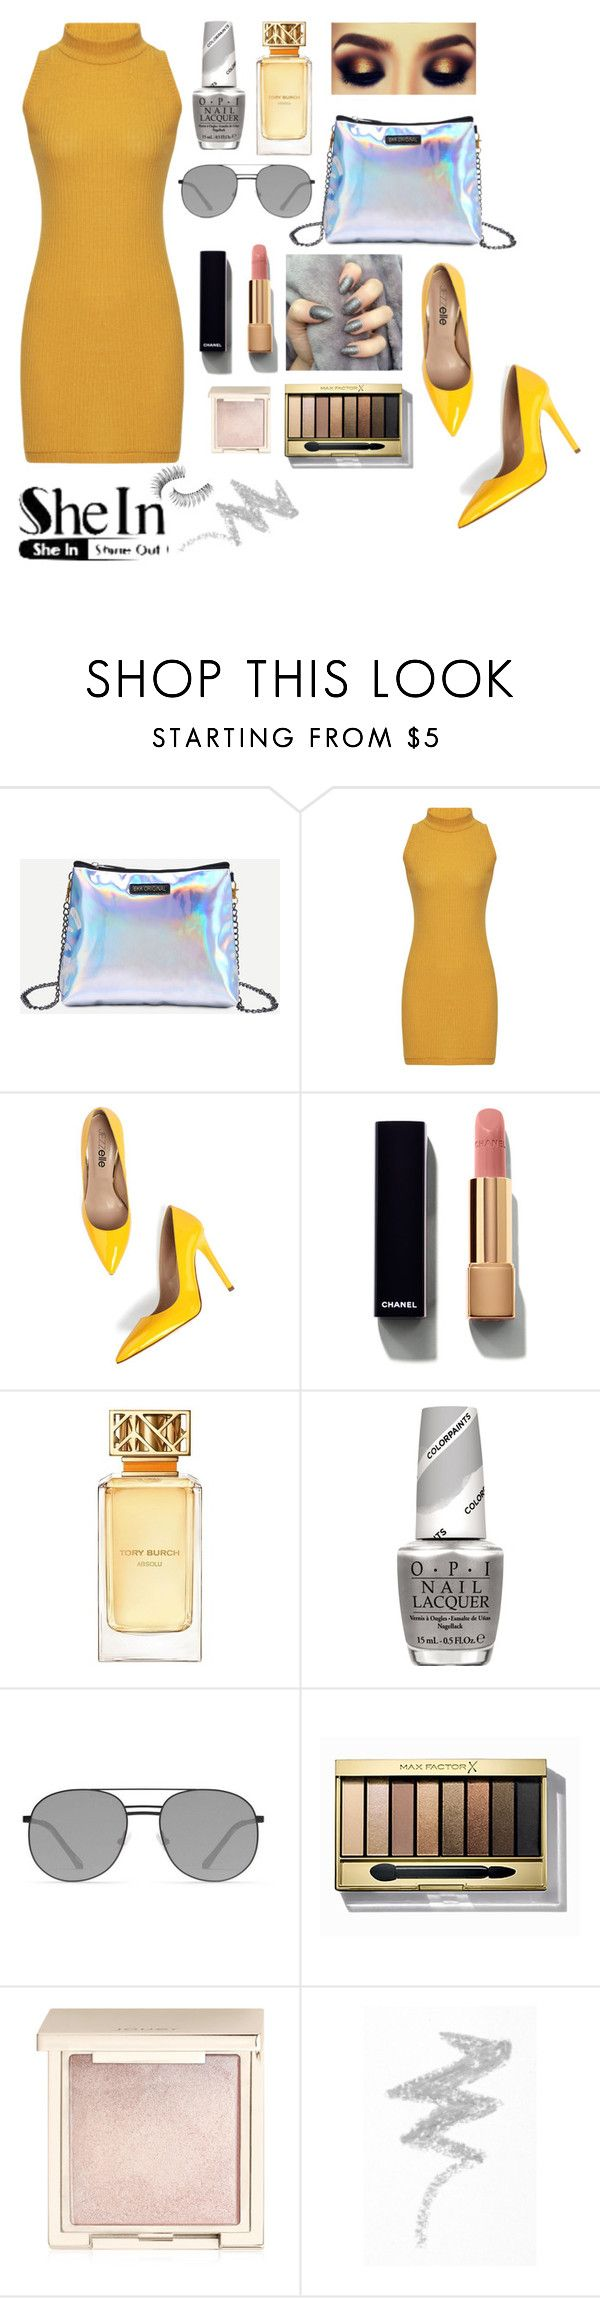 """""""Marry jane"""" by sitiperenggi on Polyvore featuring Chanel, Tory Burch, OPI, Elizabeth and James, Max Factor, Jouer, NYX, Trish McEvoy, Sheinside and shein"""